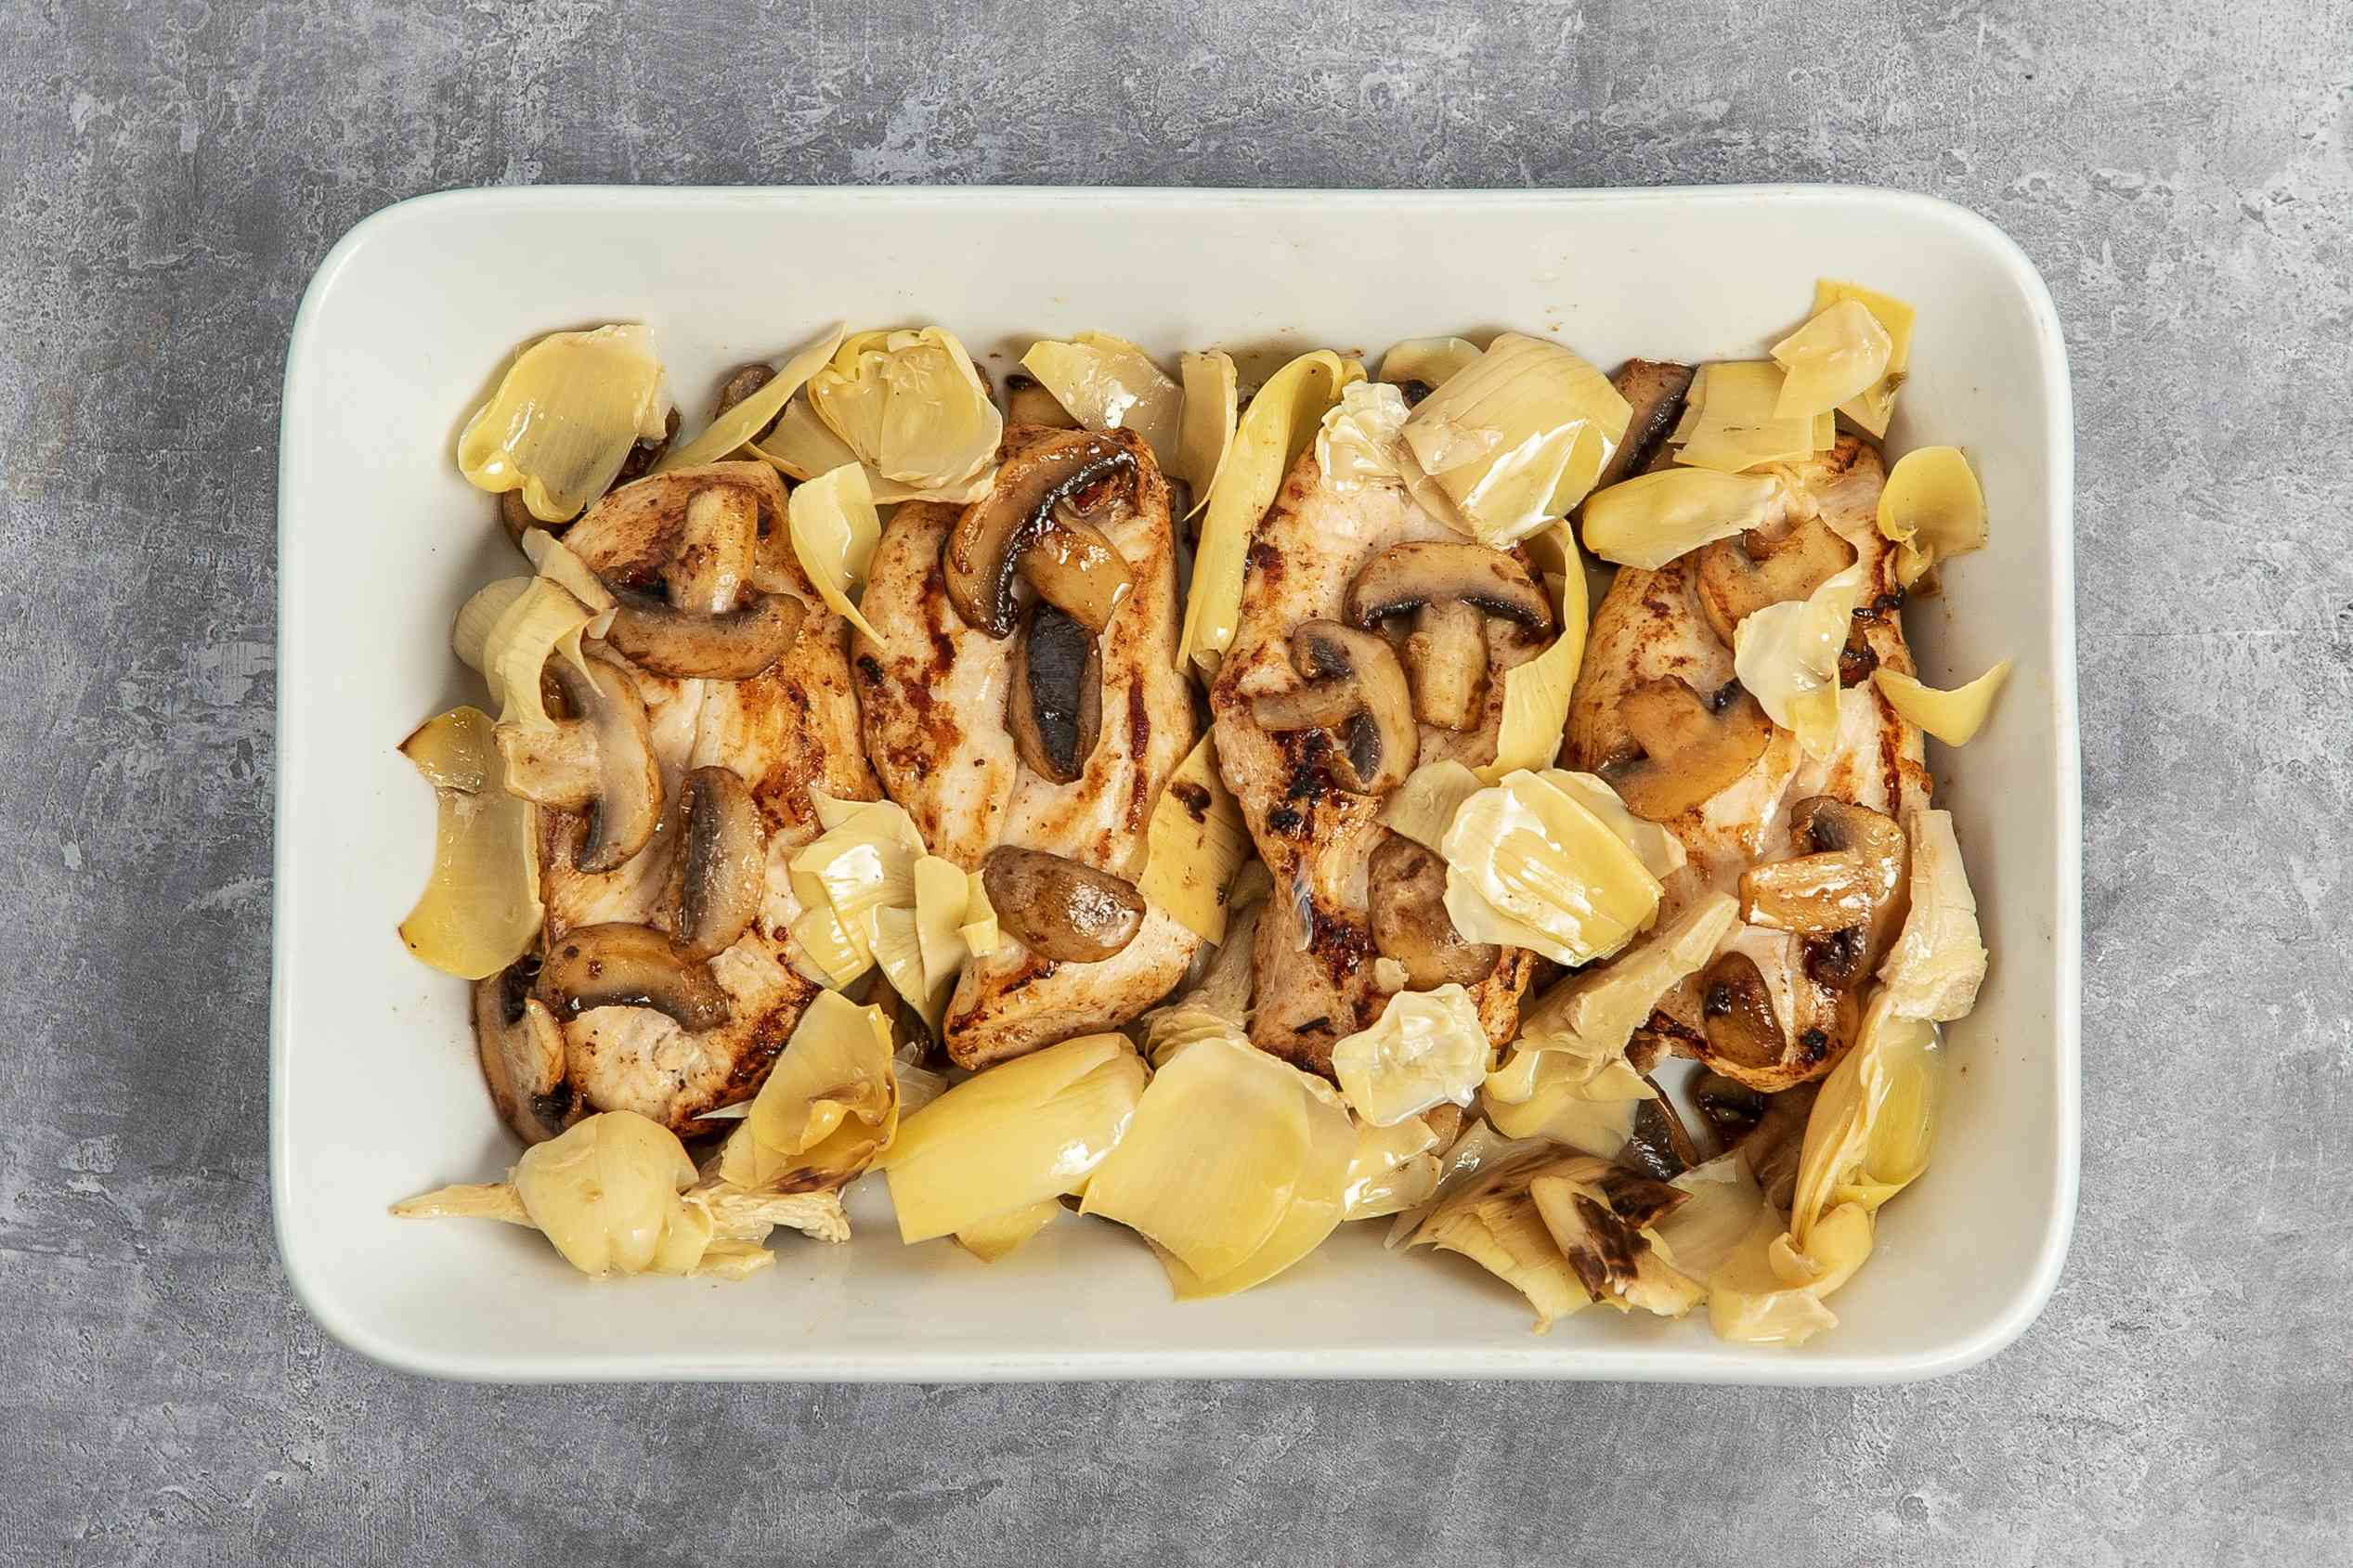 chicken, mushrooms and artichokes in a baking dish